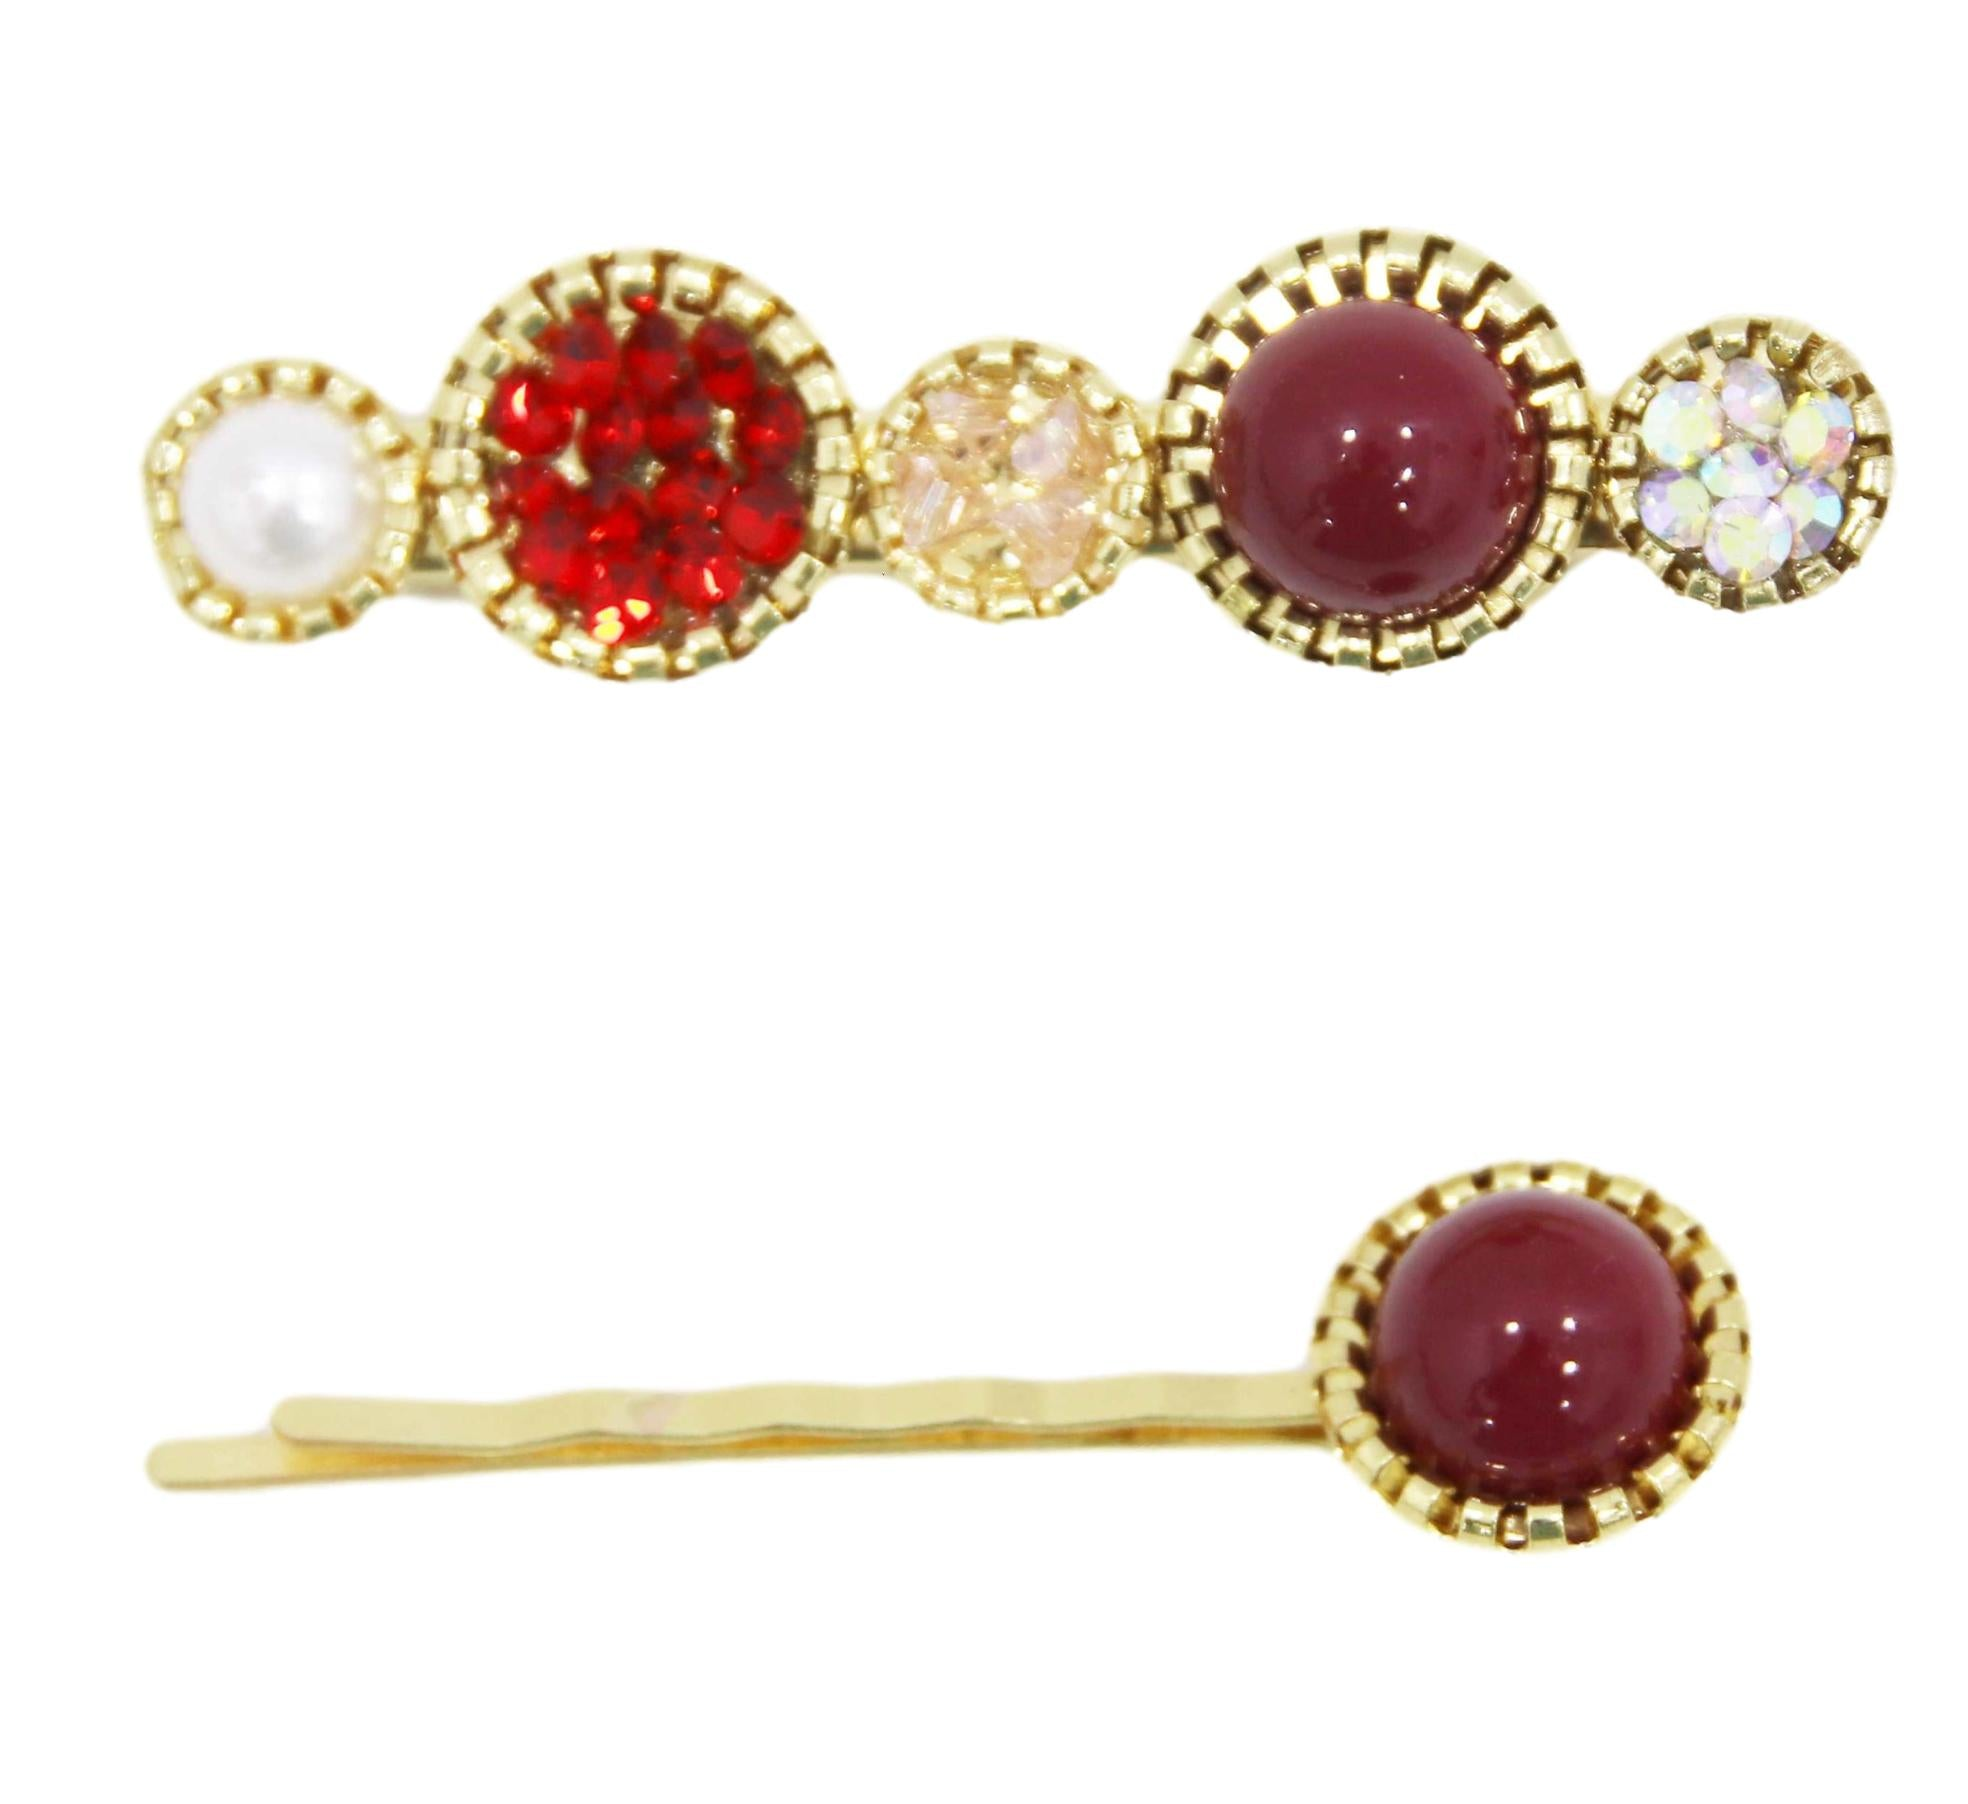 Red Diamond Pearl Hair Slide